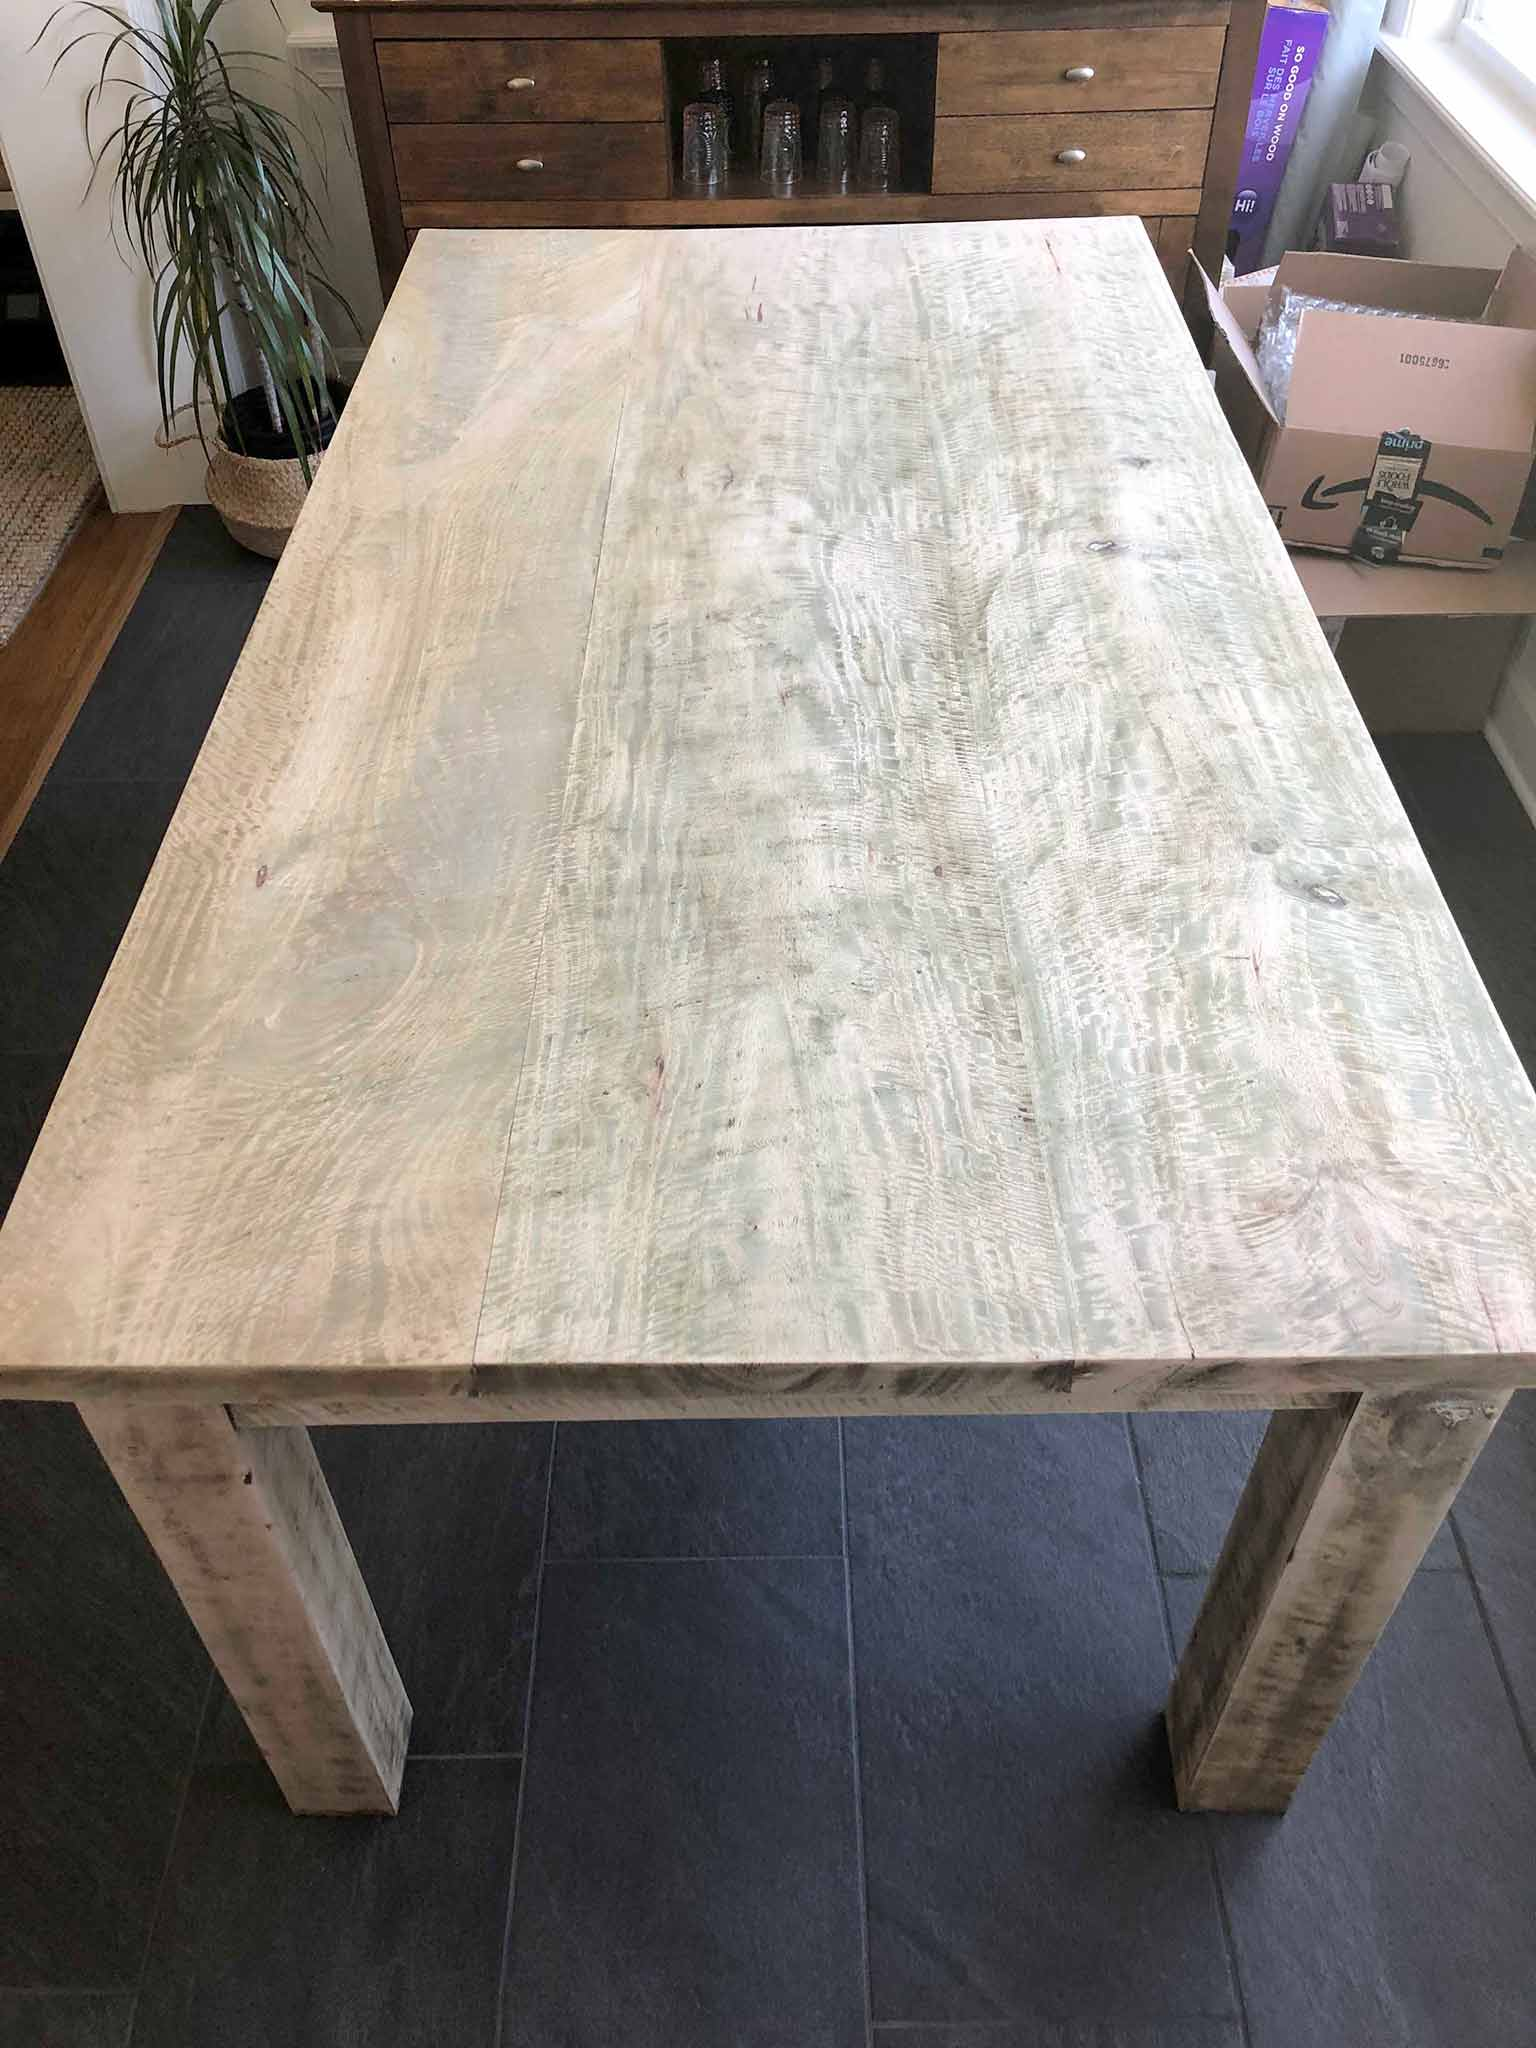 wood table after stripping